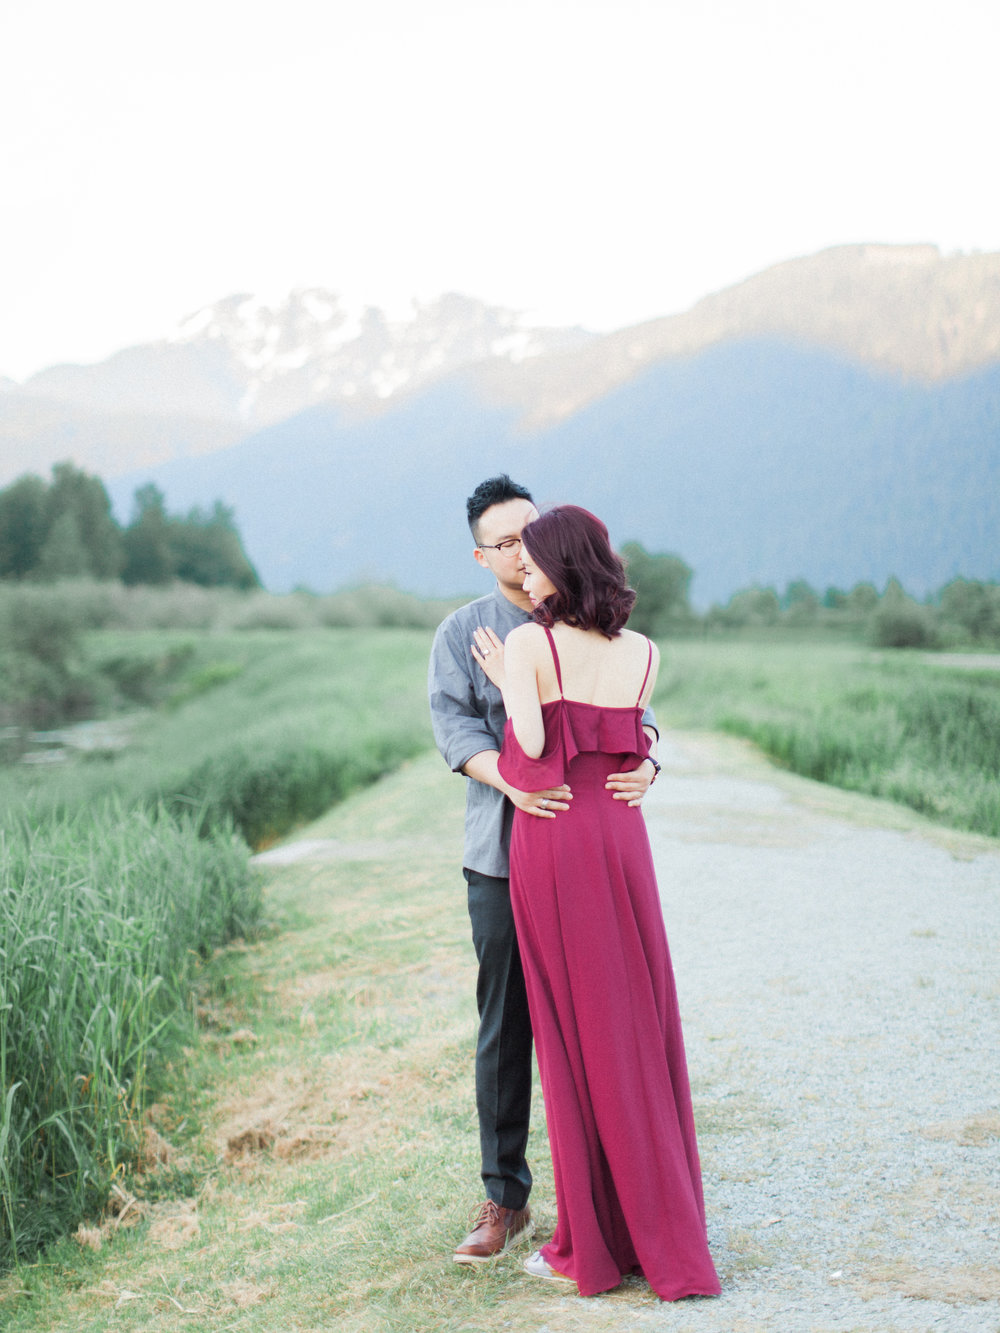 20170528Maple_Ridge_Engagement_Mary_Marco_Prewedding-31 copy.jpg